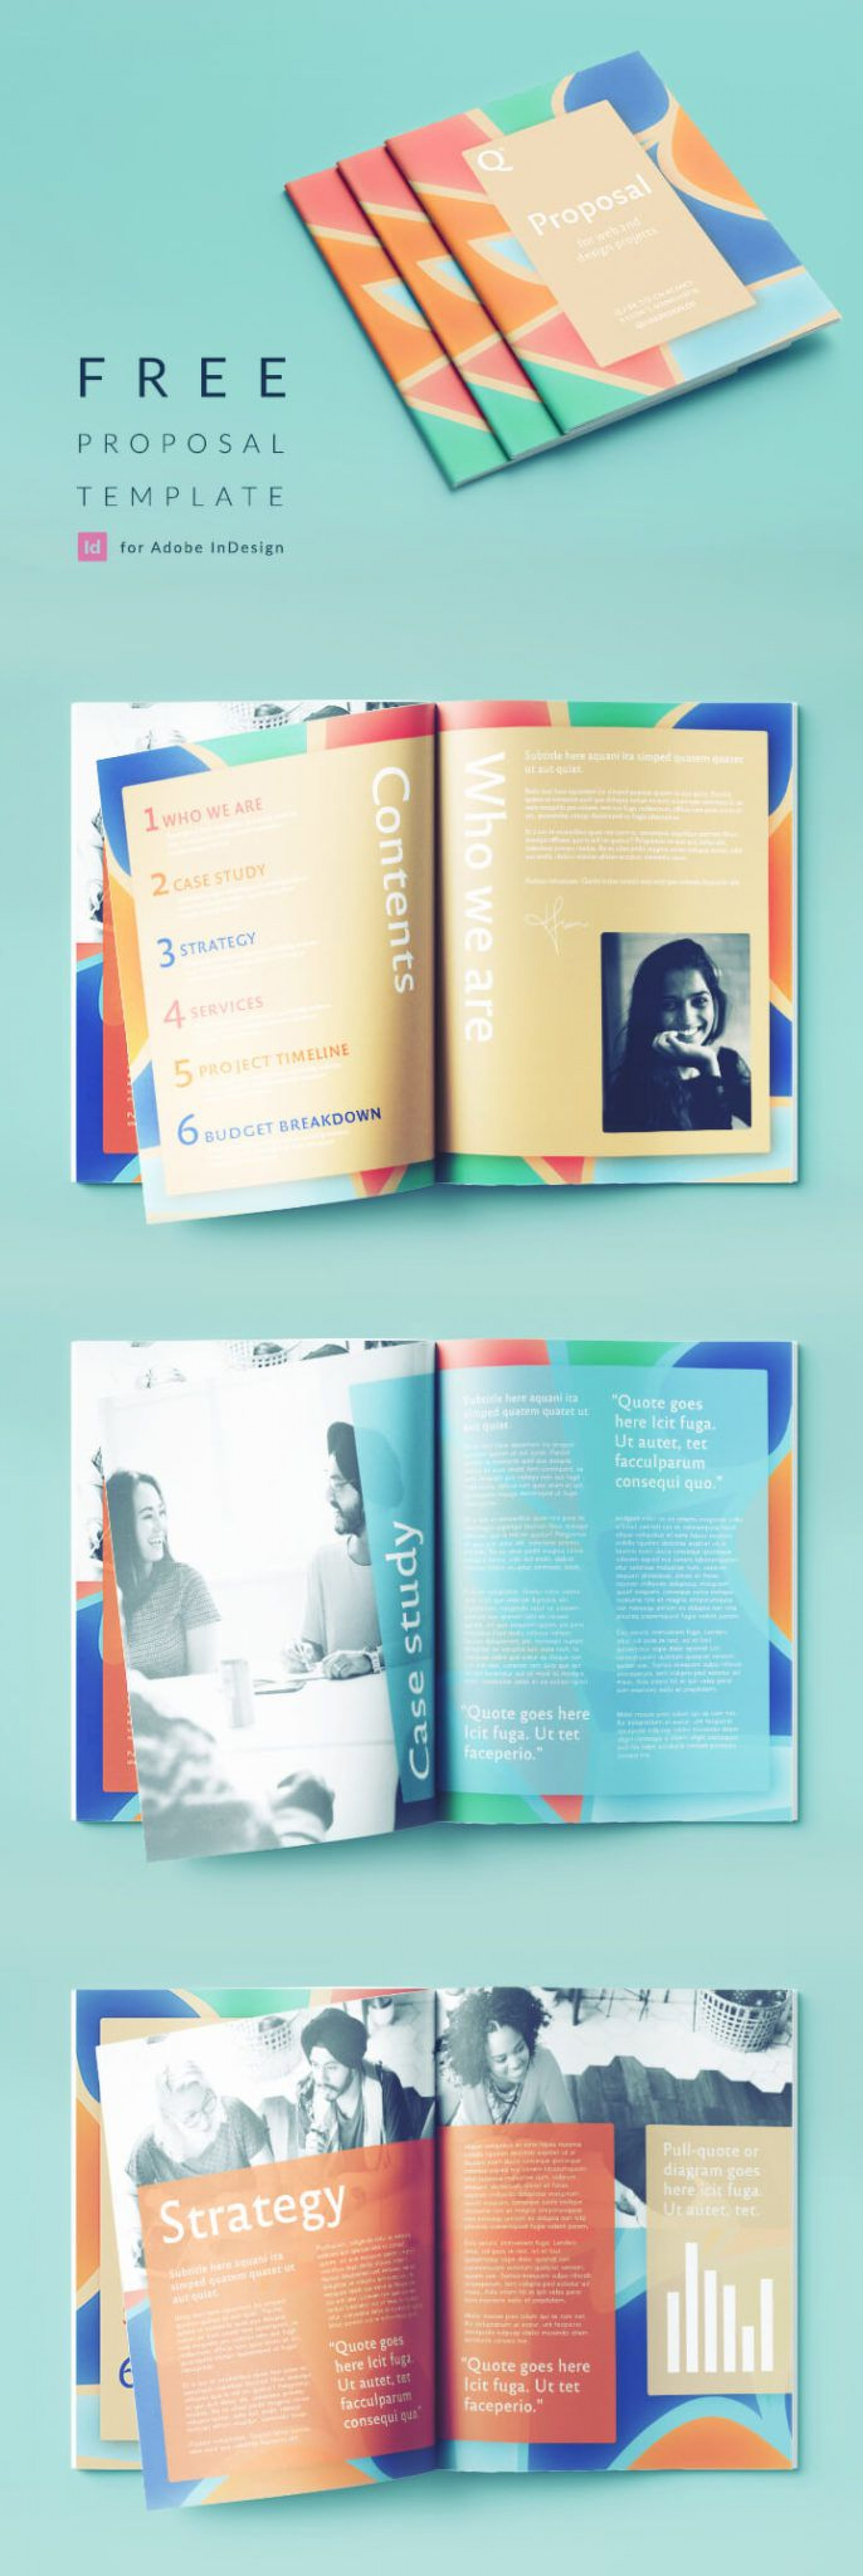 008 Exceptional Free Busines Proposal Template Indesign Concept 1920